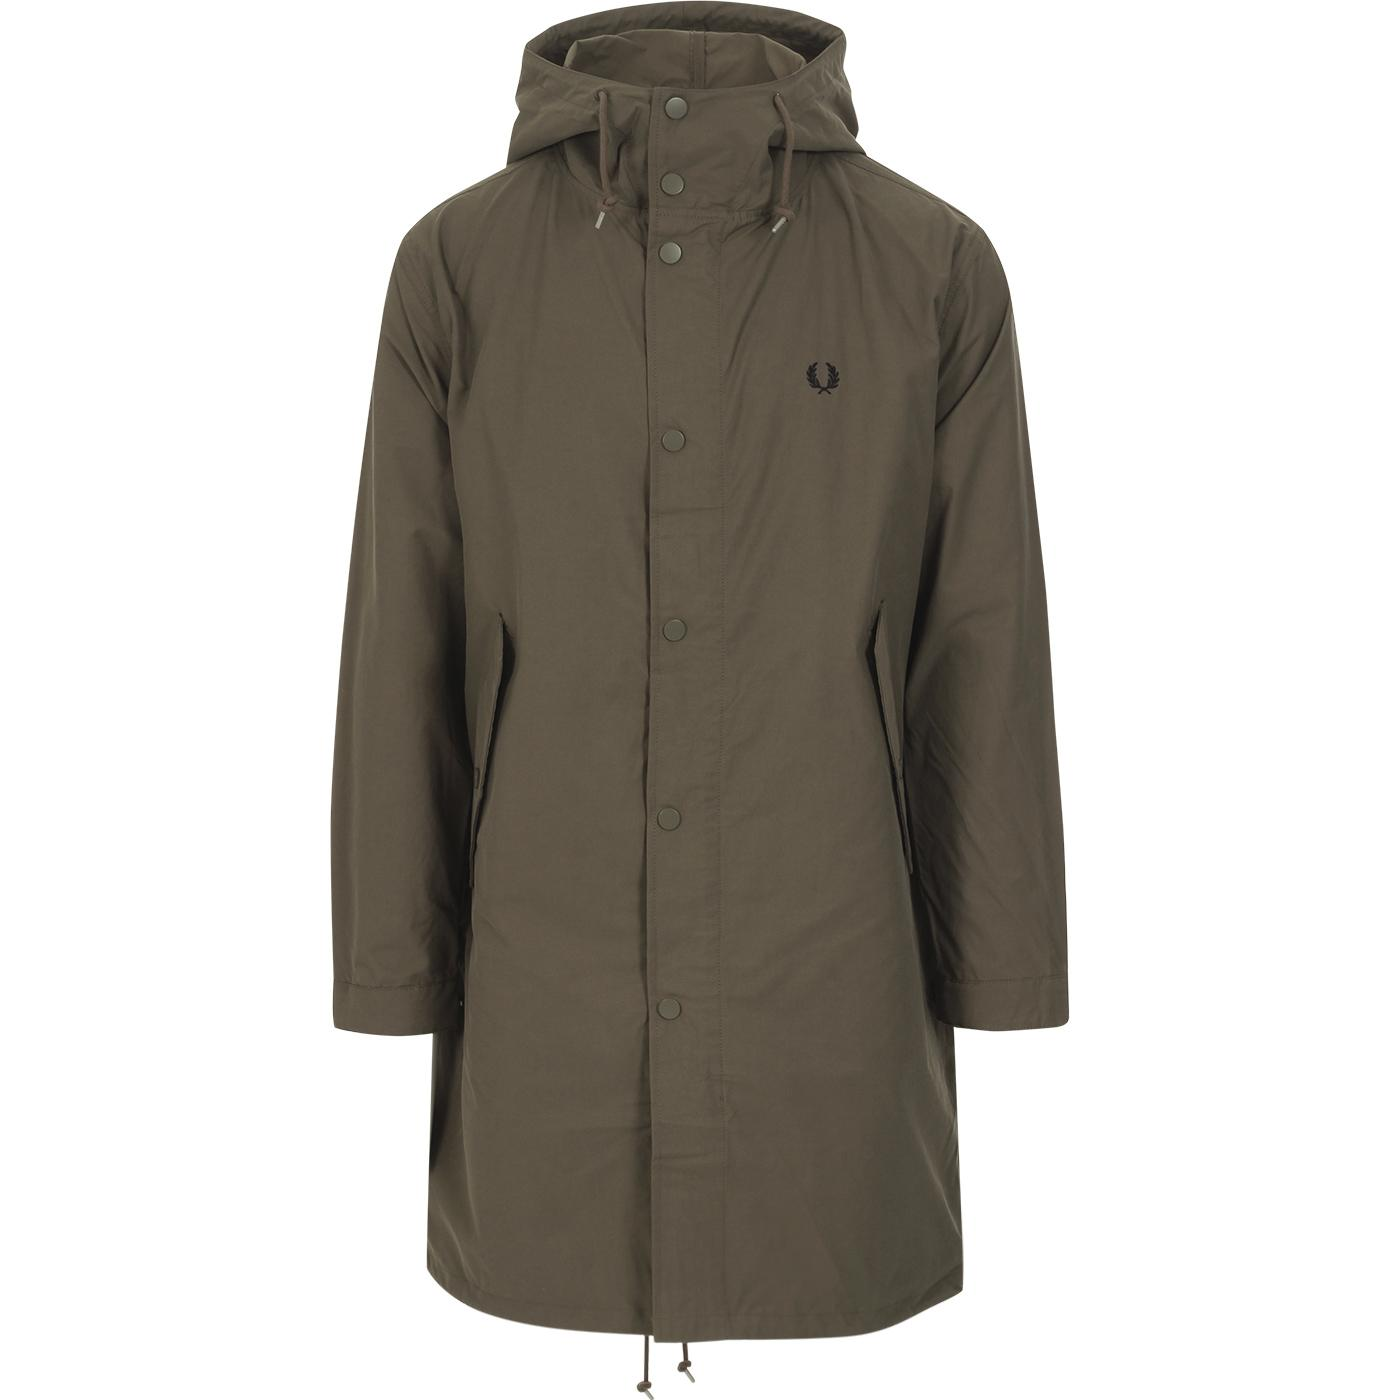 FRED PERRY 60s Mod Fishtail Parka (Military Brown)